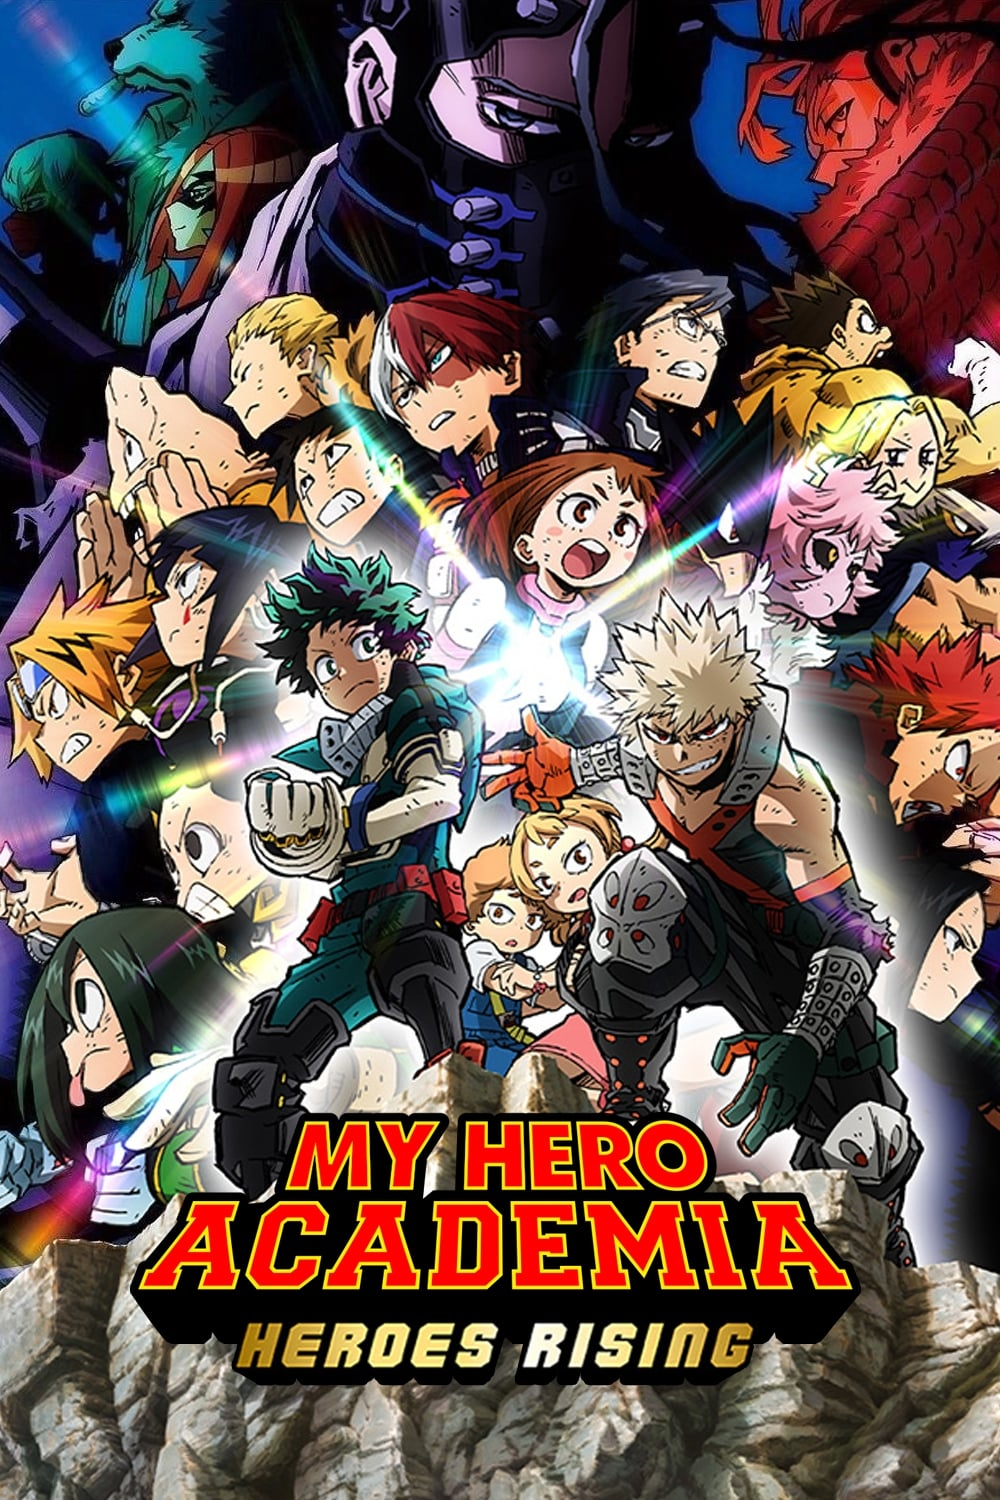 image for My Hero Academia: Heroes Rising